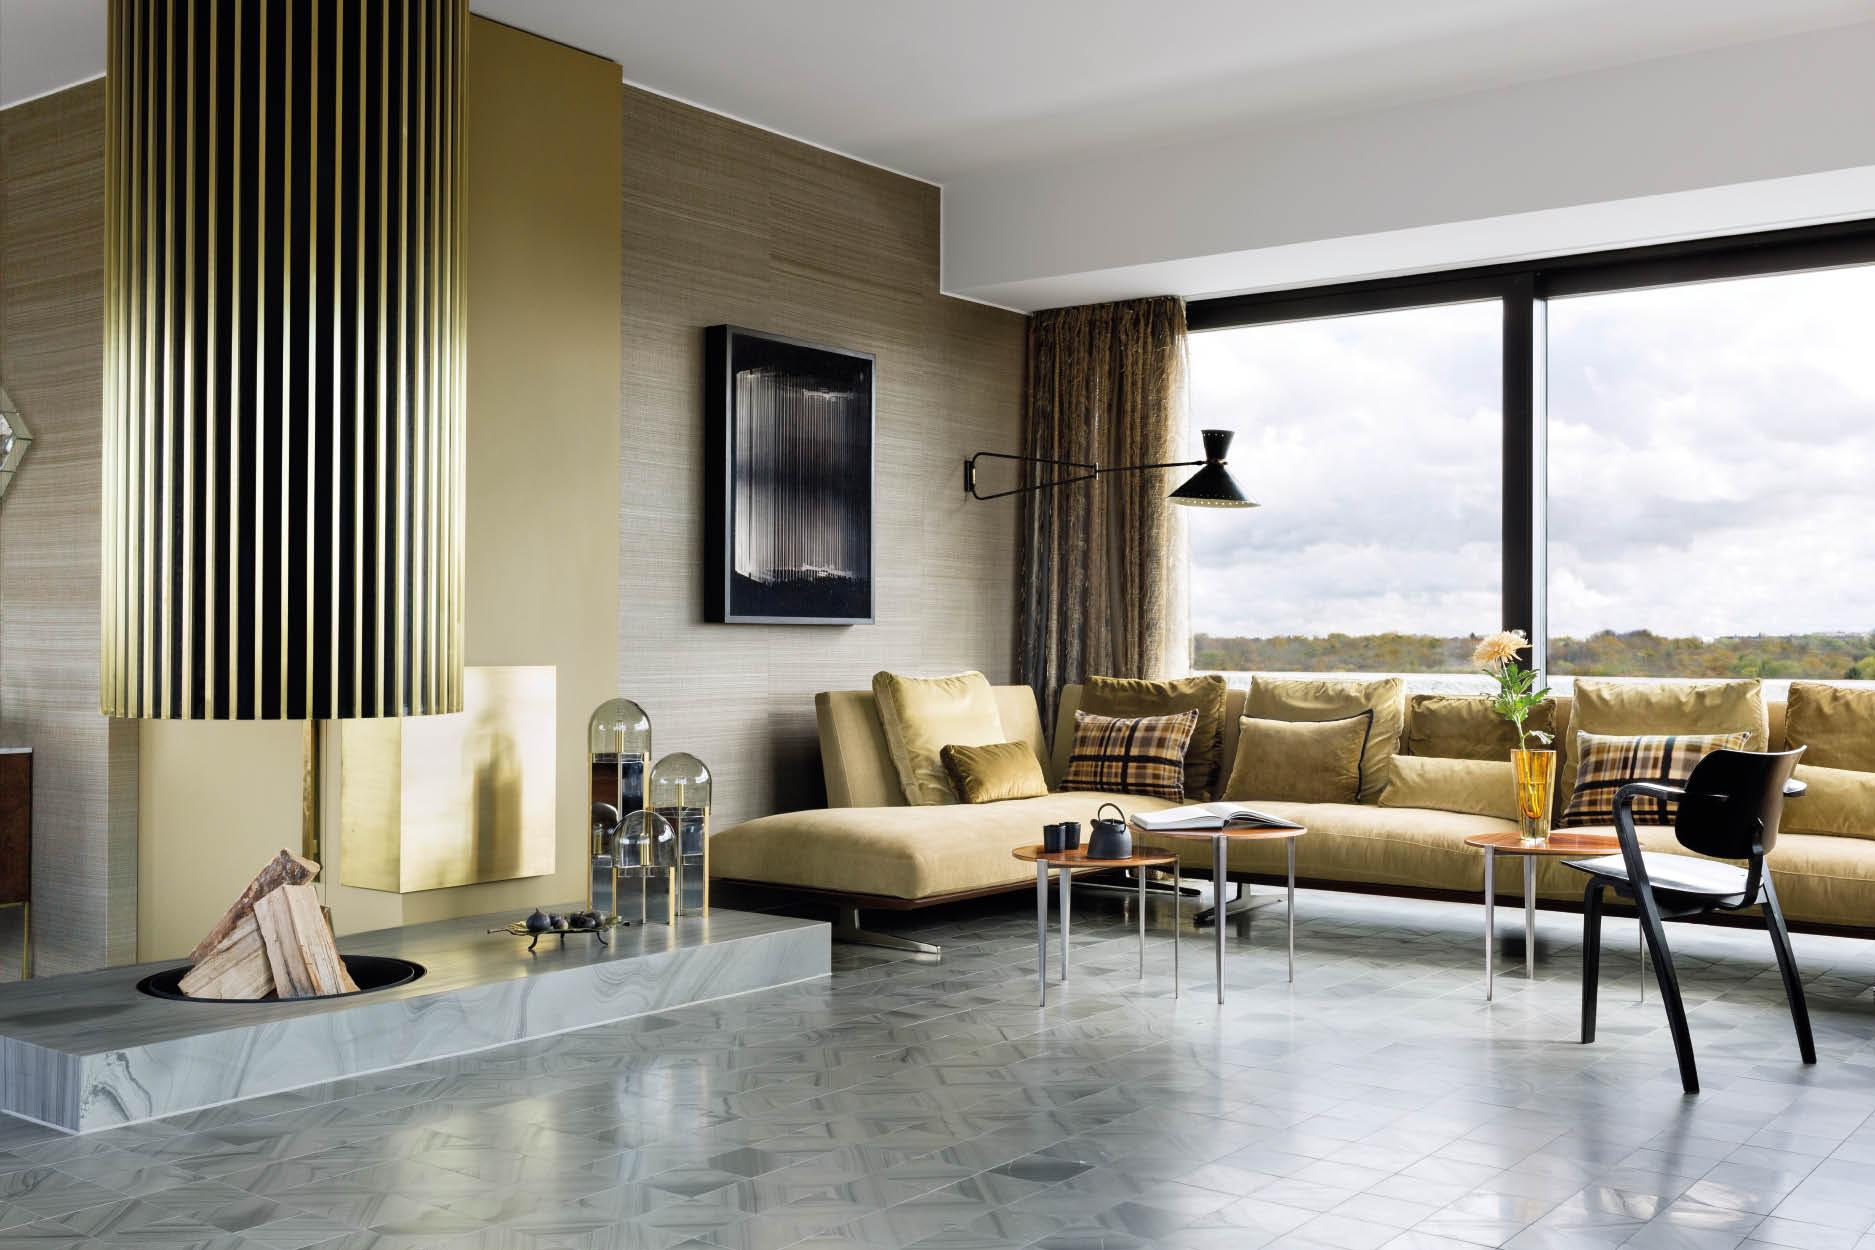 The living room features a grey natural stone floor, brass-coloured velvet fabrics and a gold floating fireplace